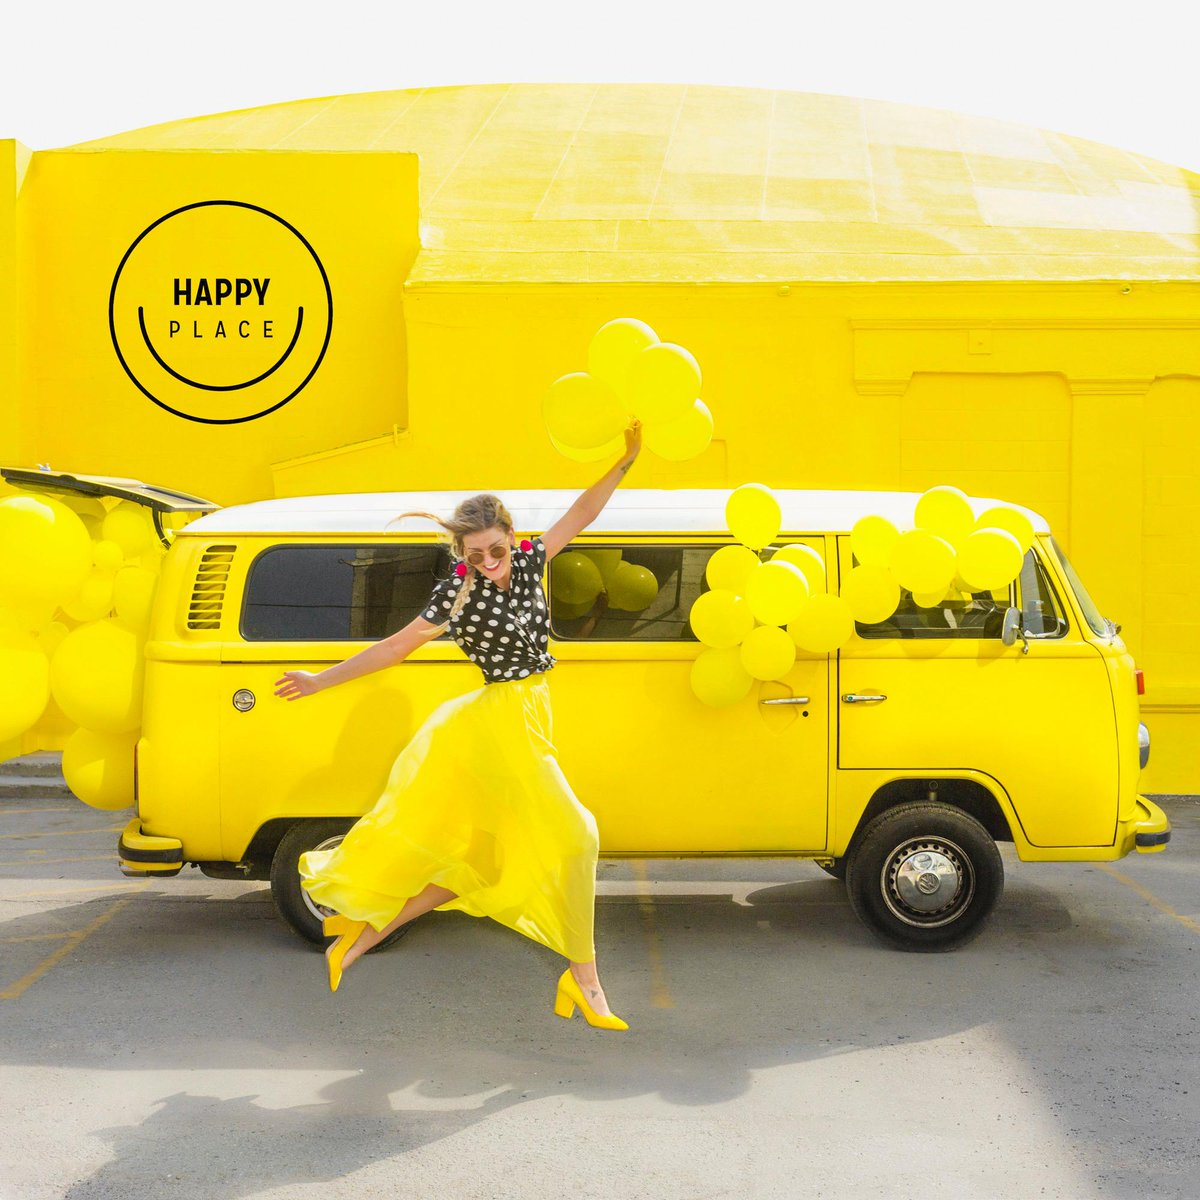 live nation on twitter tickets are on sale now for happy place a massive pop up experience. Black Bedroom Furniture Sets. Home Design Ideas